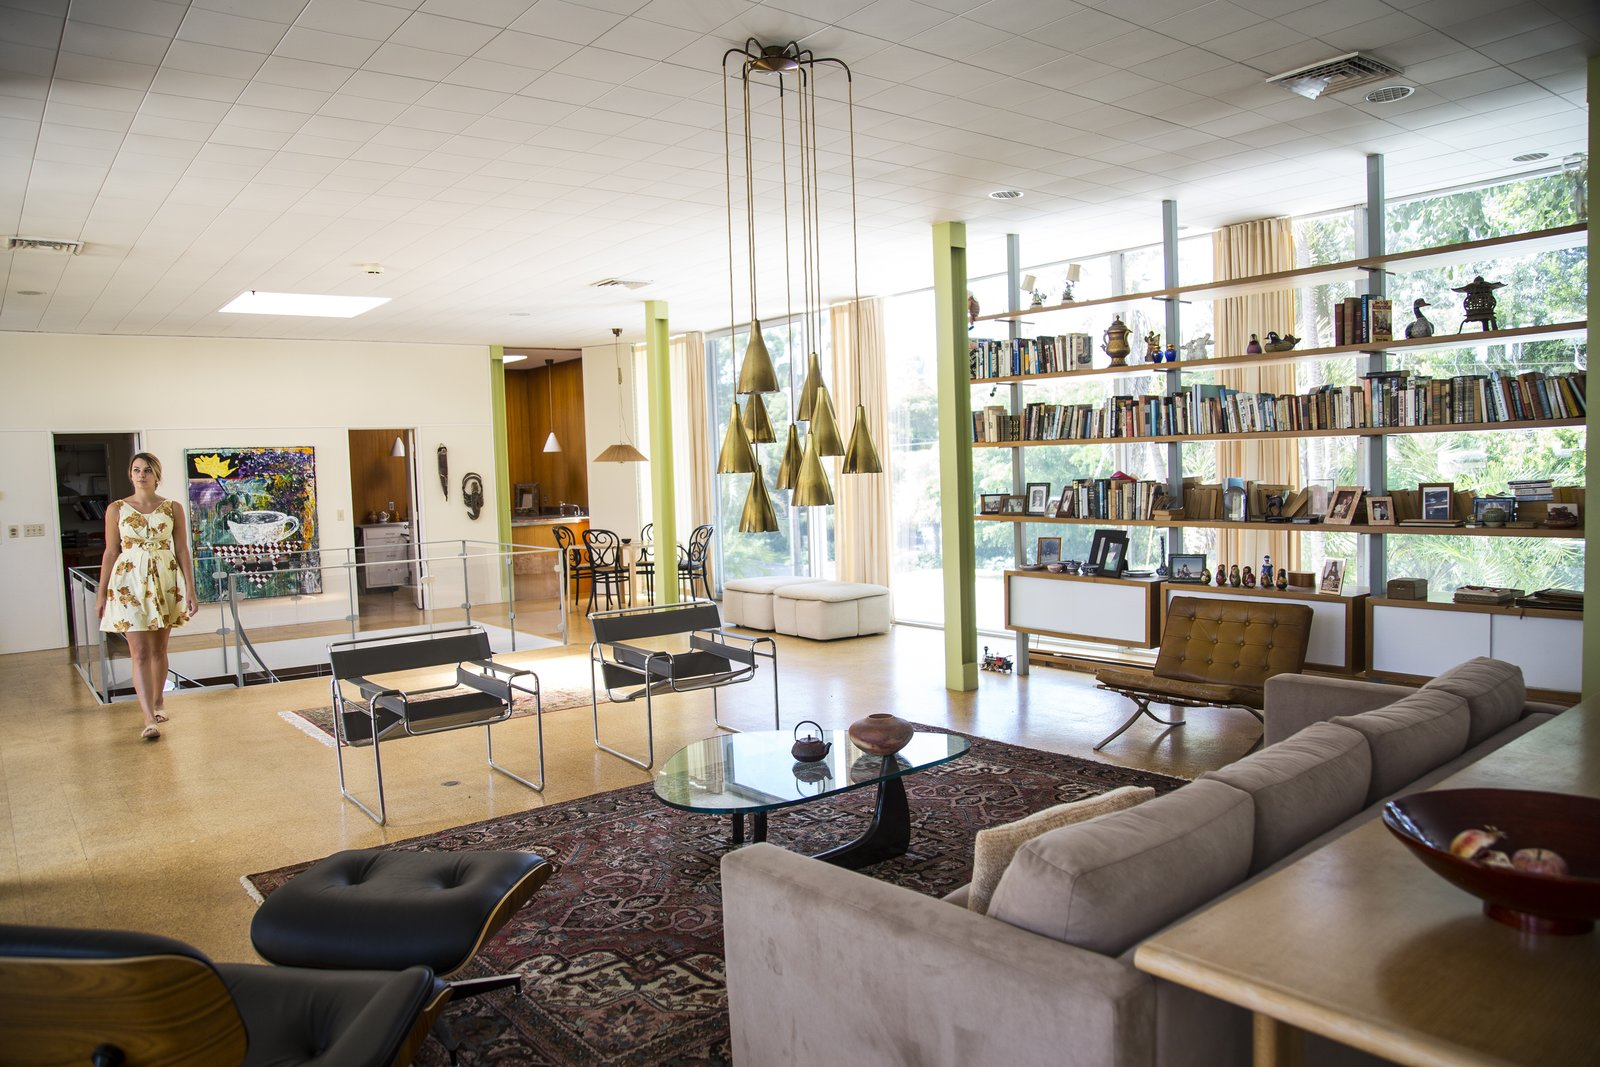 Living Room, Ceiling Lighting, Pendant Lighting, Cork Floor, Rug Floor, Sofa, Chair, Console Tables, Coffee Tables, Bookcase, Recliner, and Ottomans  Hiss Studio